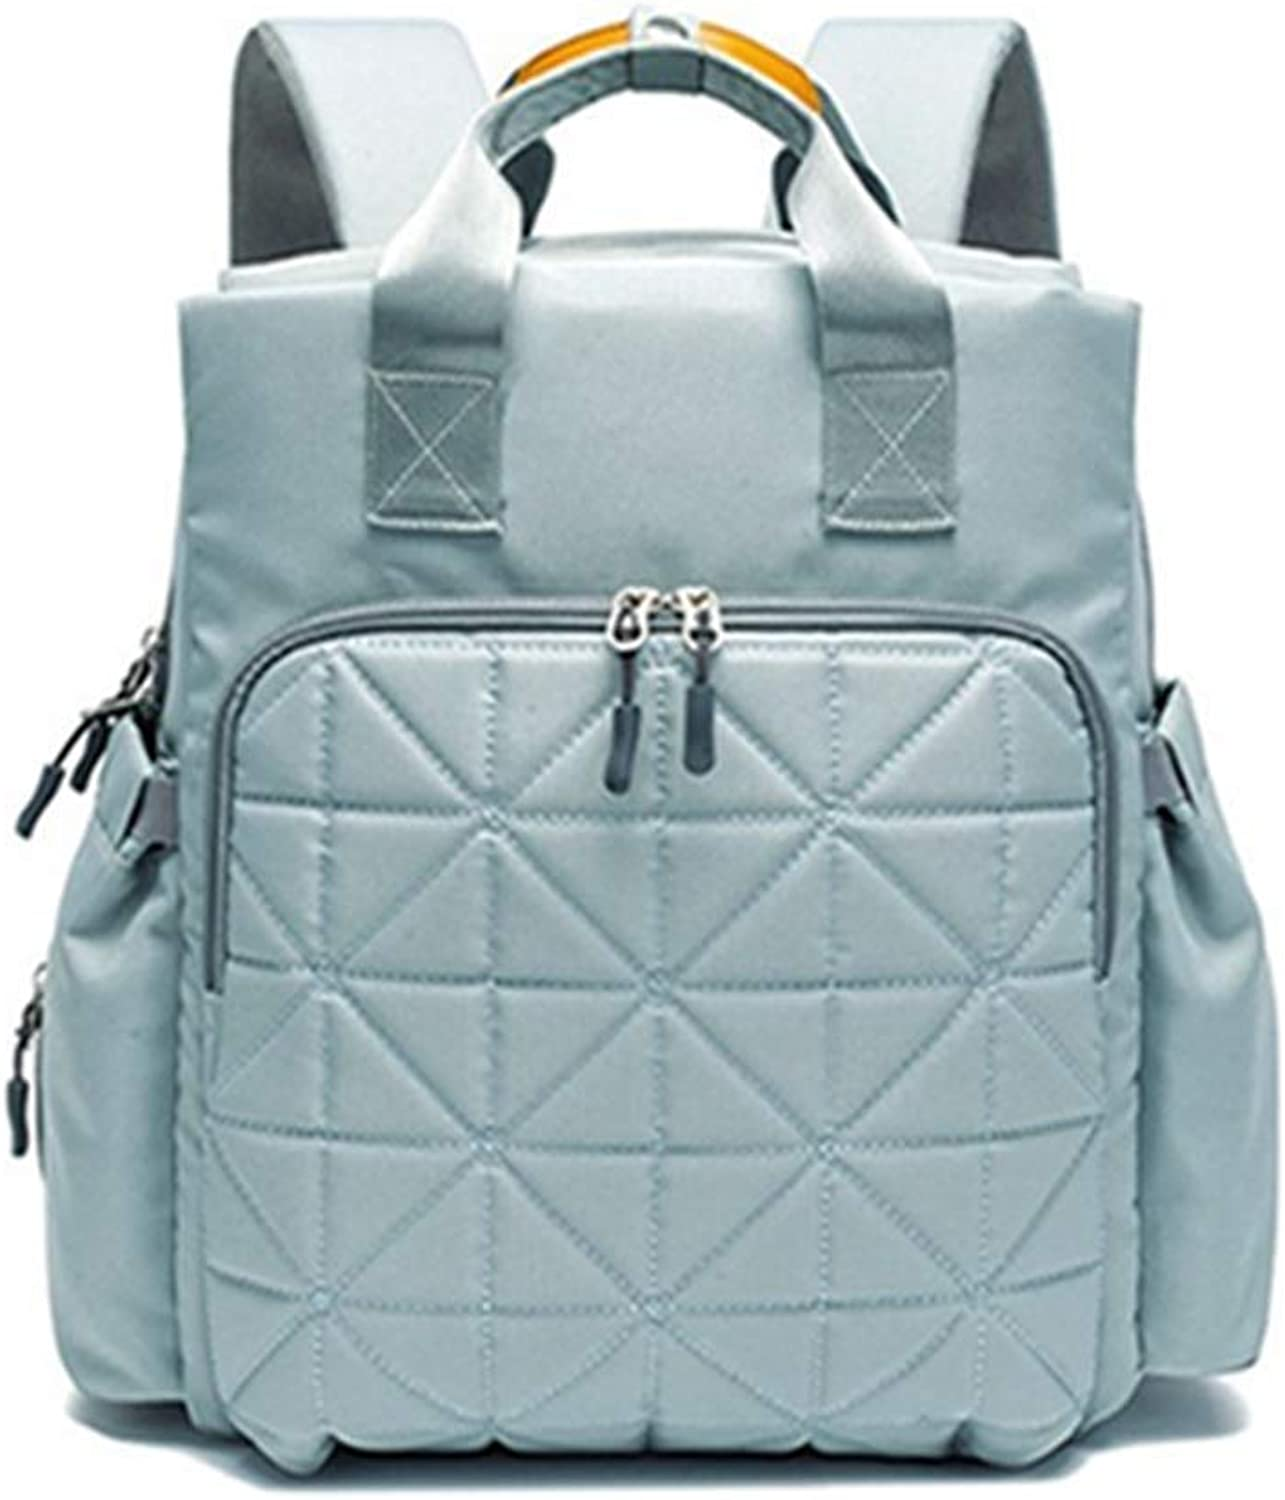 WMM-backpack Trave Bag, Multifunktionsbeutel-Schultertasche Mode-Outing-Reisetasche mit groer Kapazitt